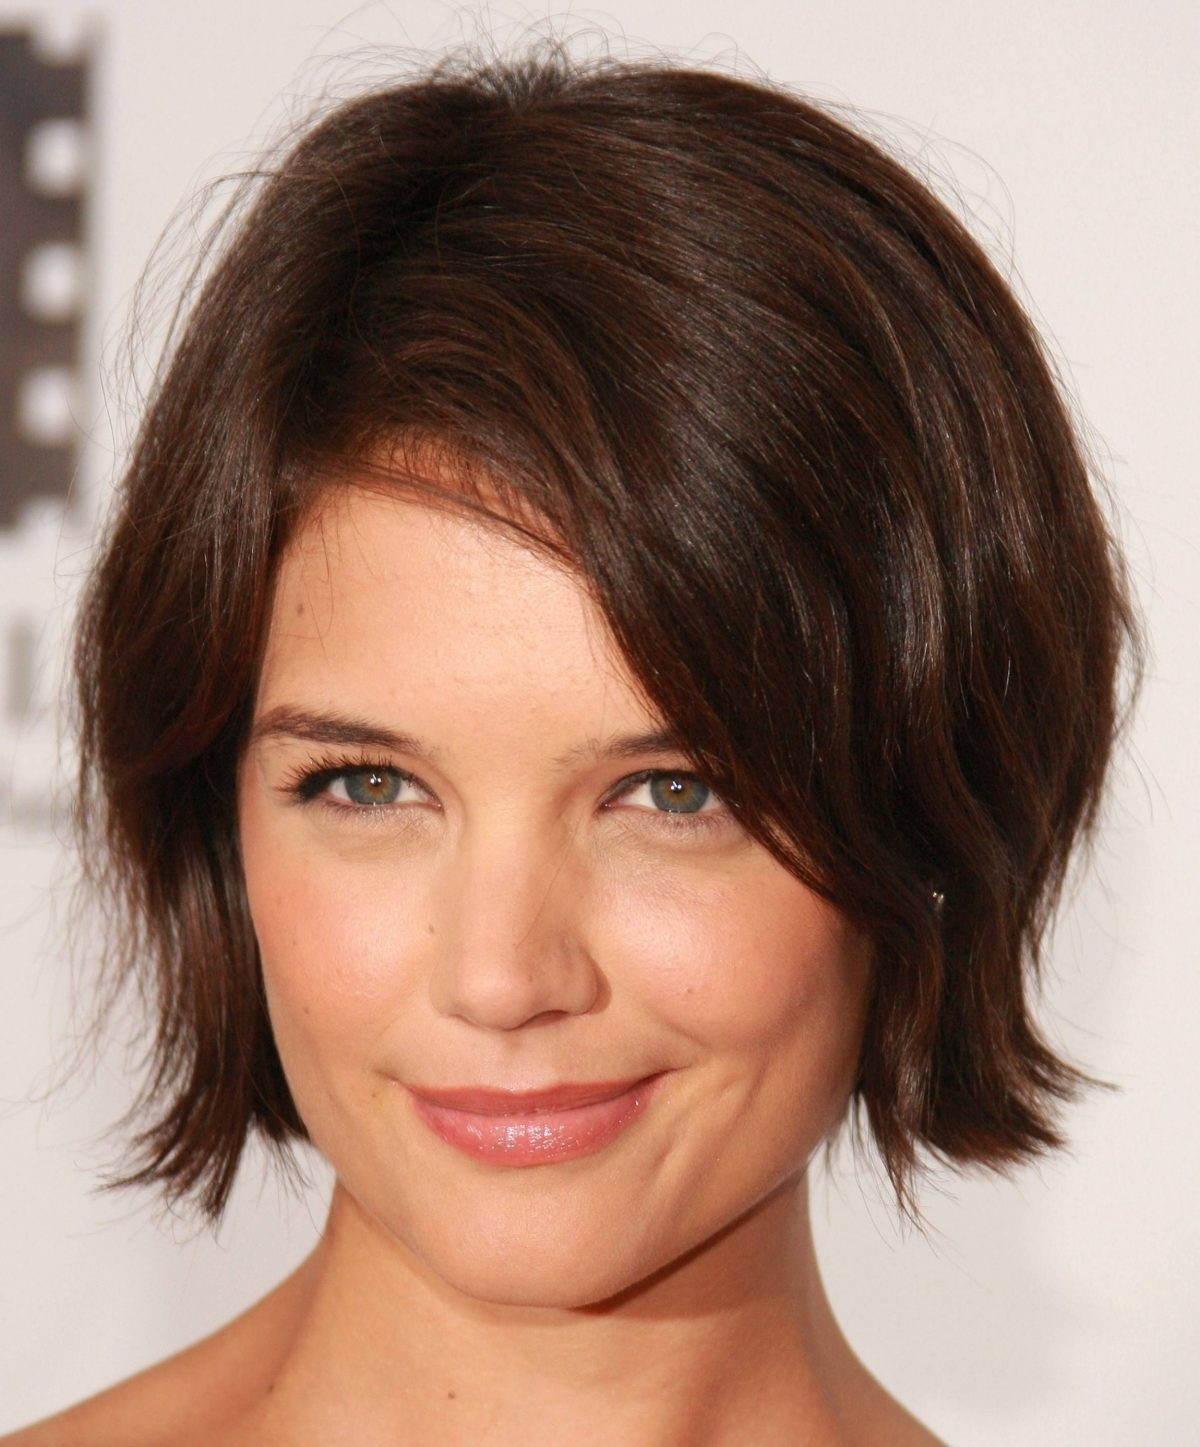 Best Short Hairstyles – Cute Hair Cut Guide For Round Face Shape Regarding Recent Pixie Hairstyles For Round Face Shape (View 6 of 15)